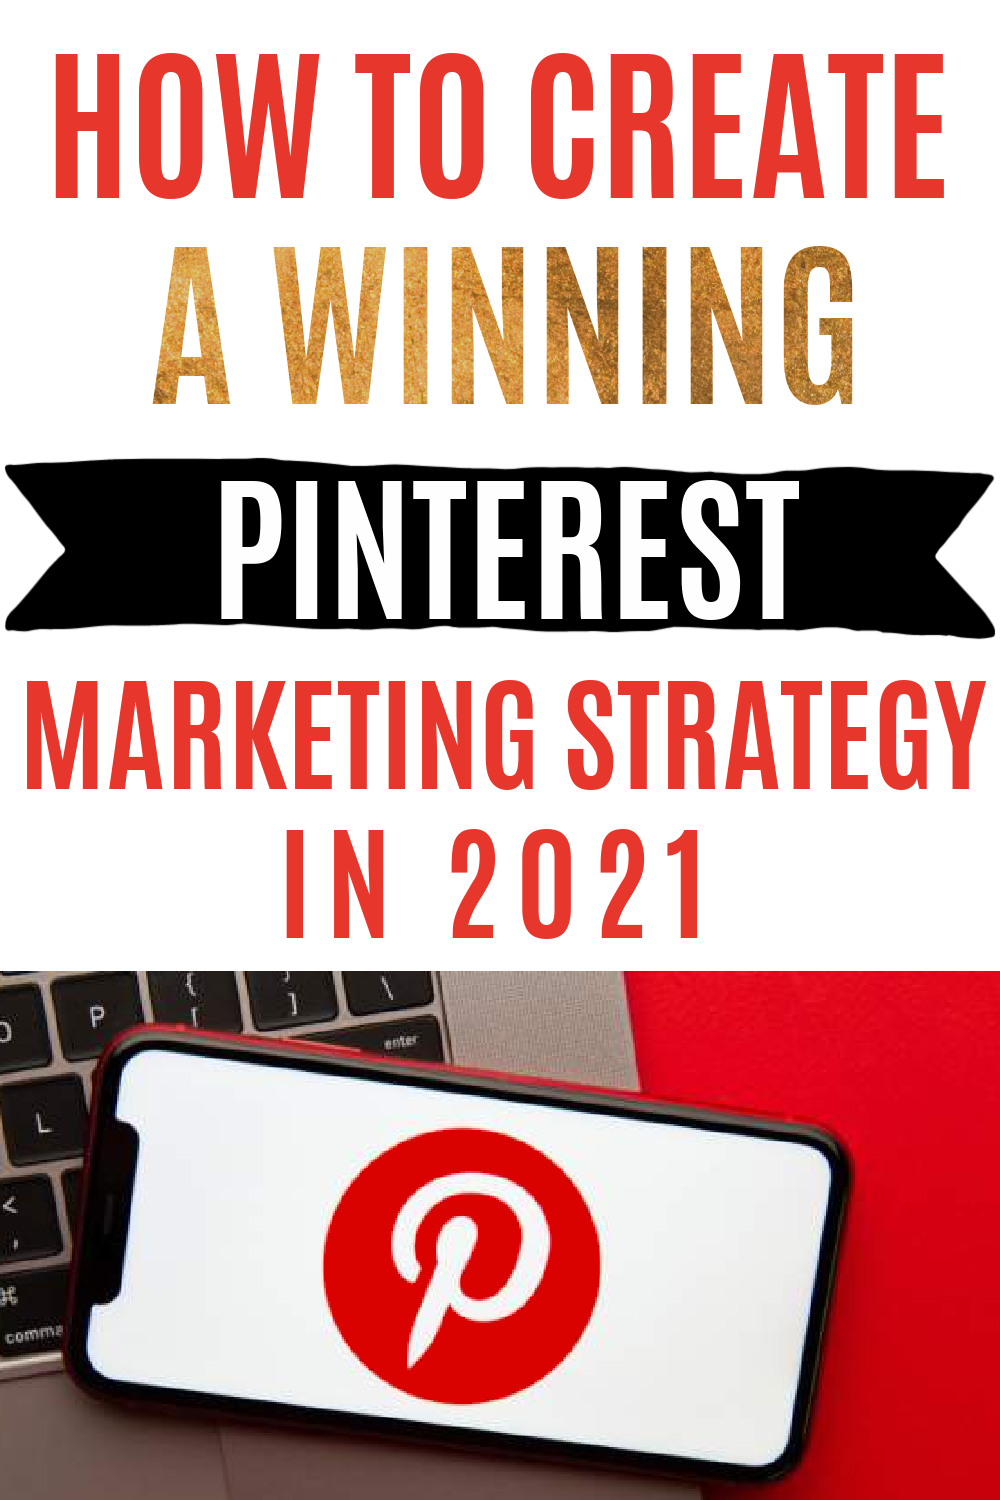 How to Create a Winning Pinterest Marketing Strategy in 2021